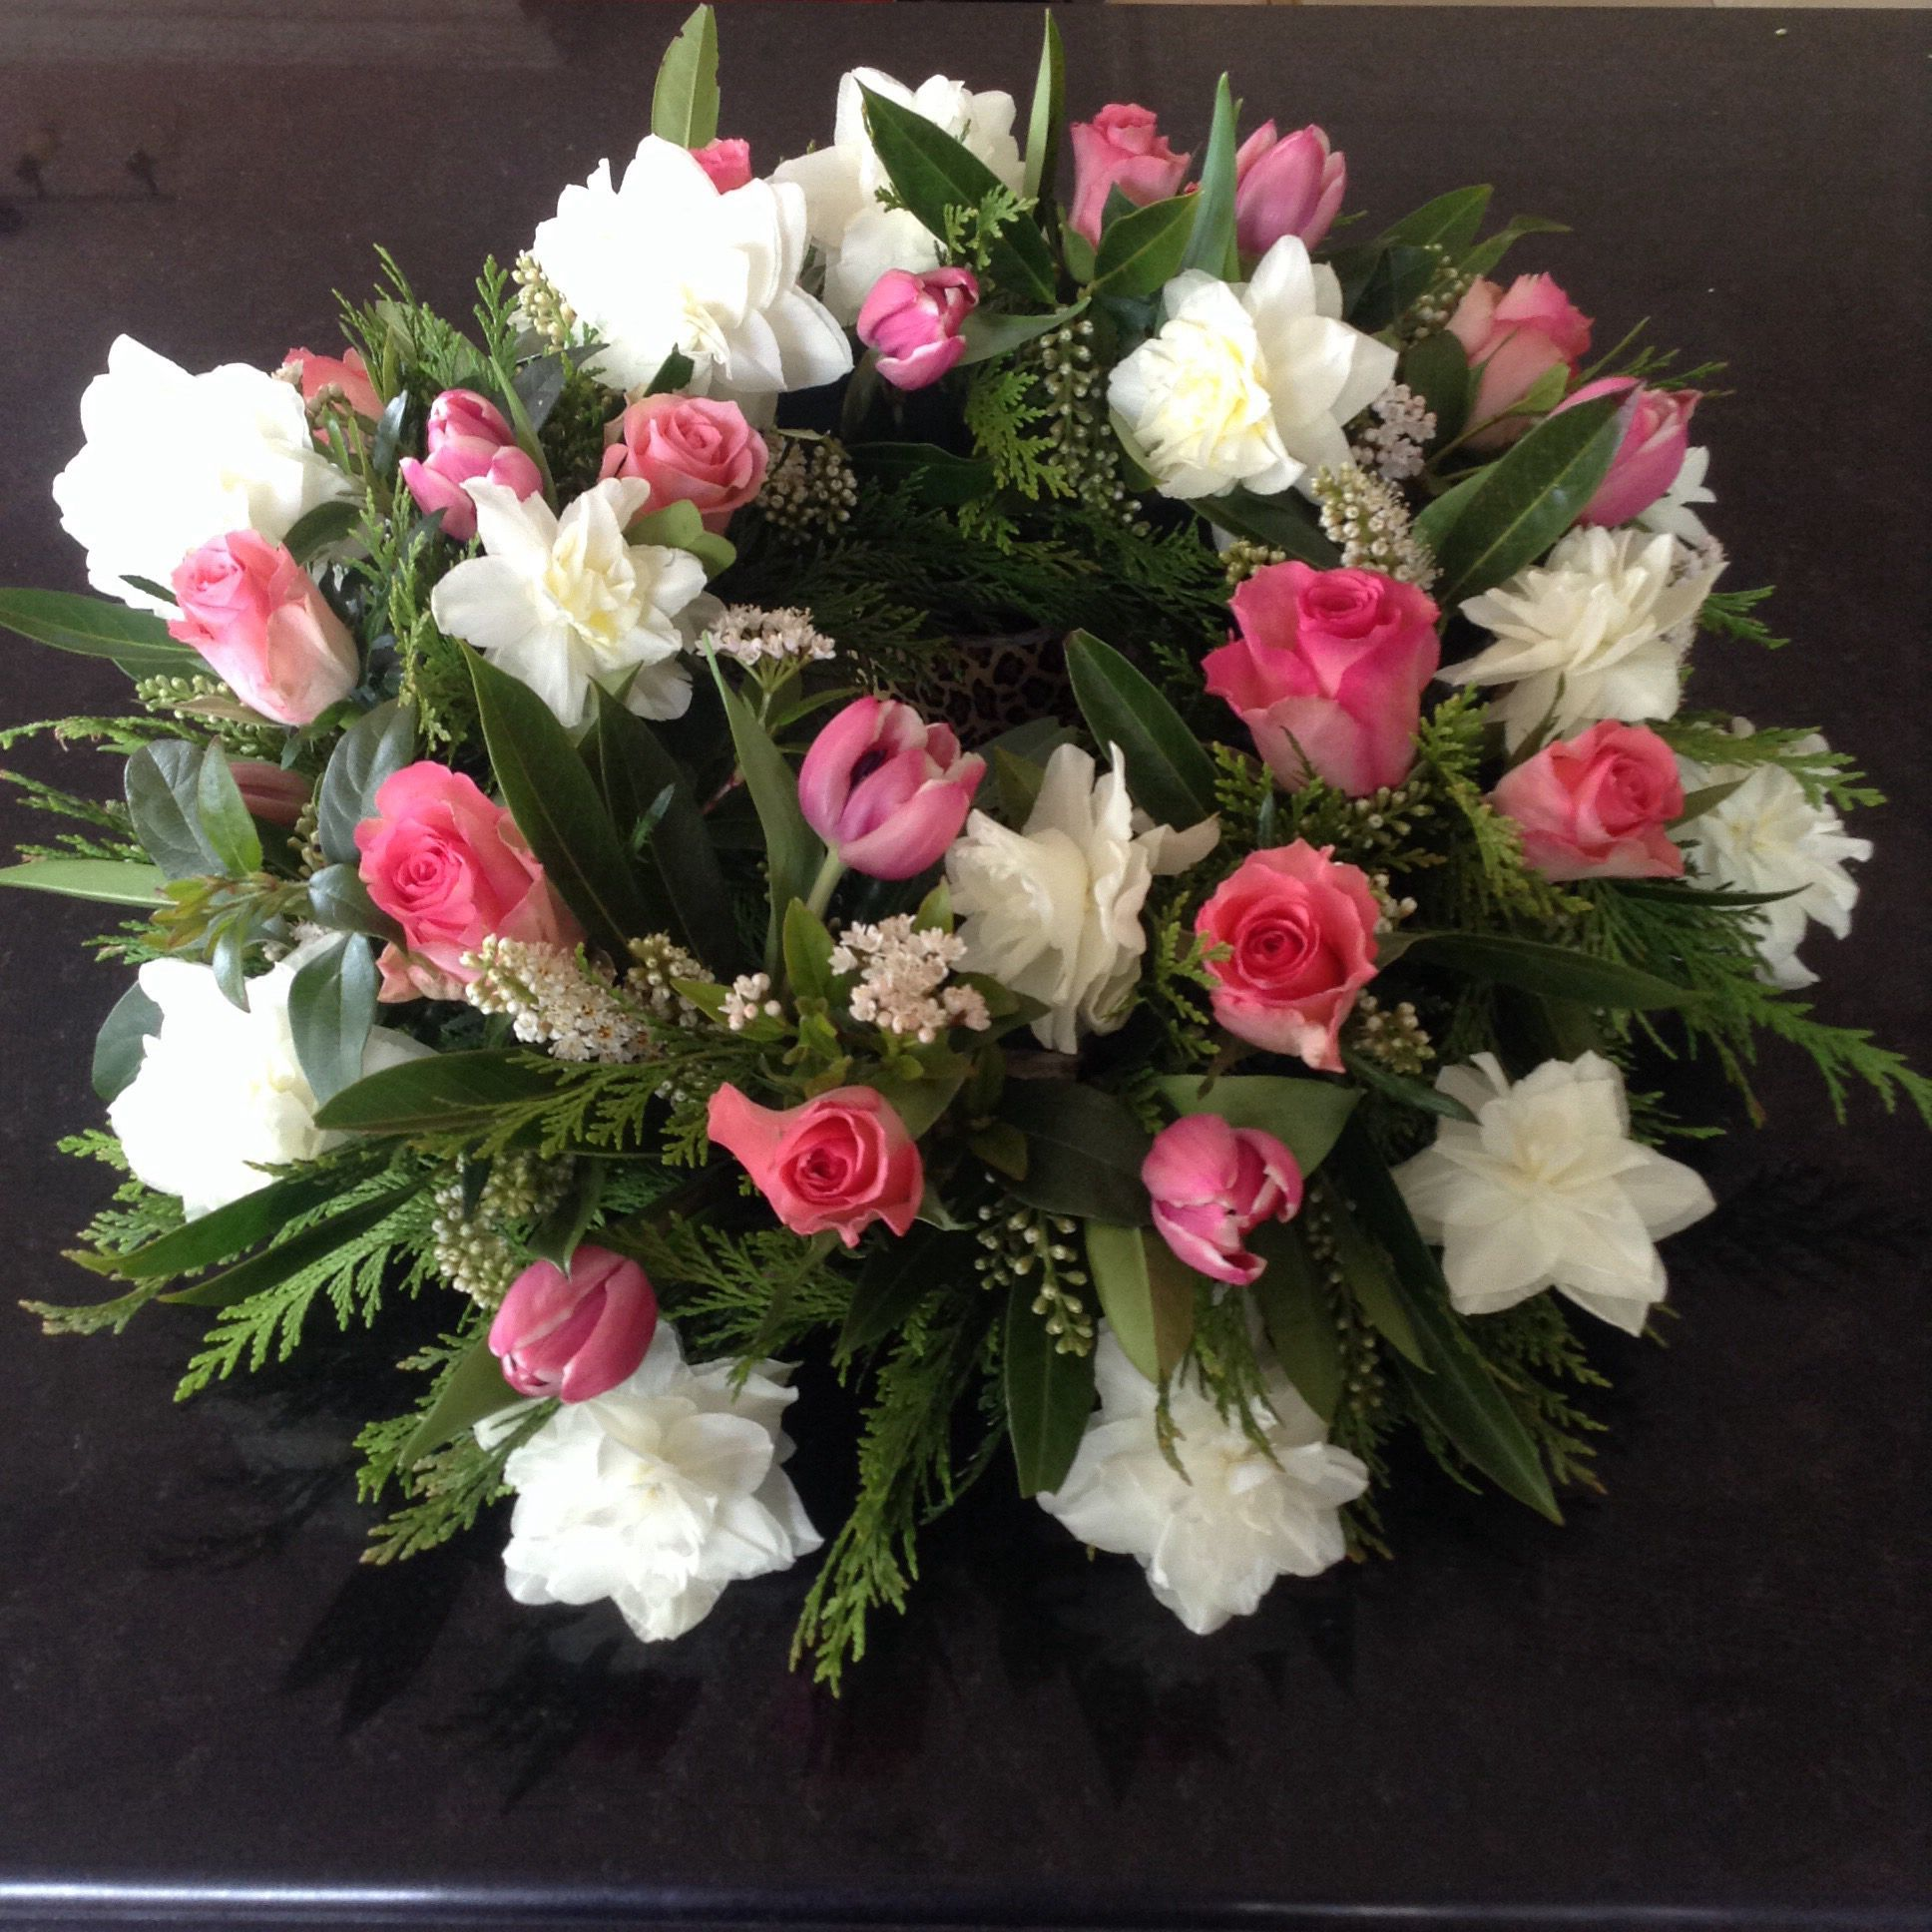 Pink roses and white daffodils inspiratsiooni likelilledest pink roses and white daffodils izmirmasajfo